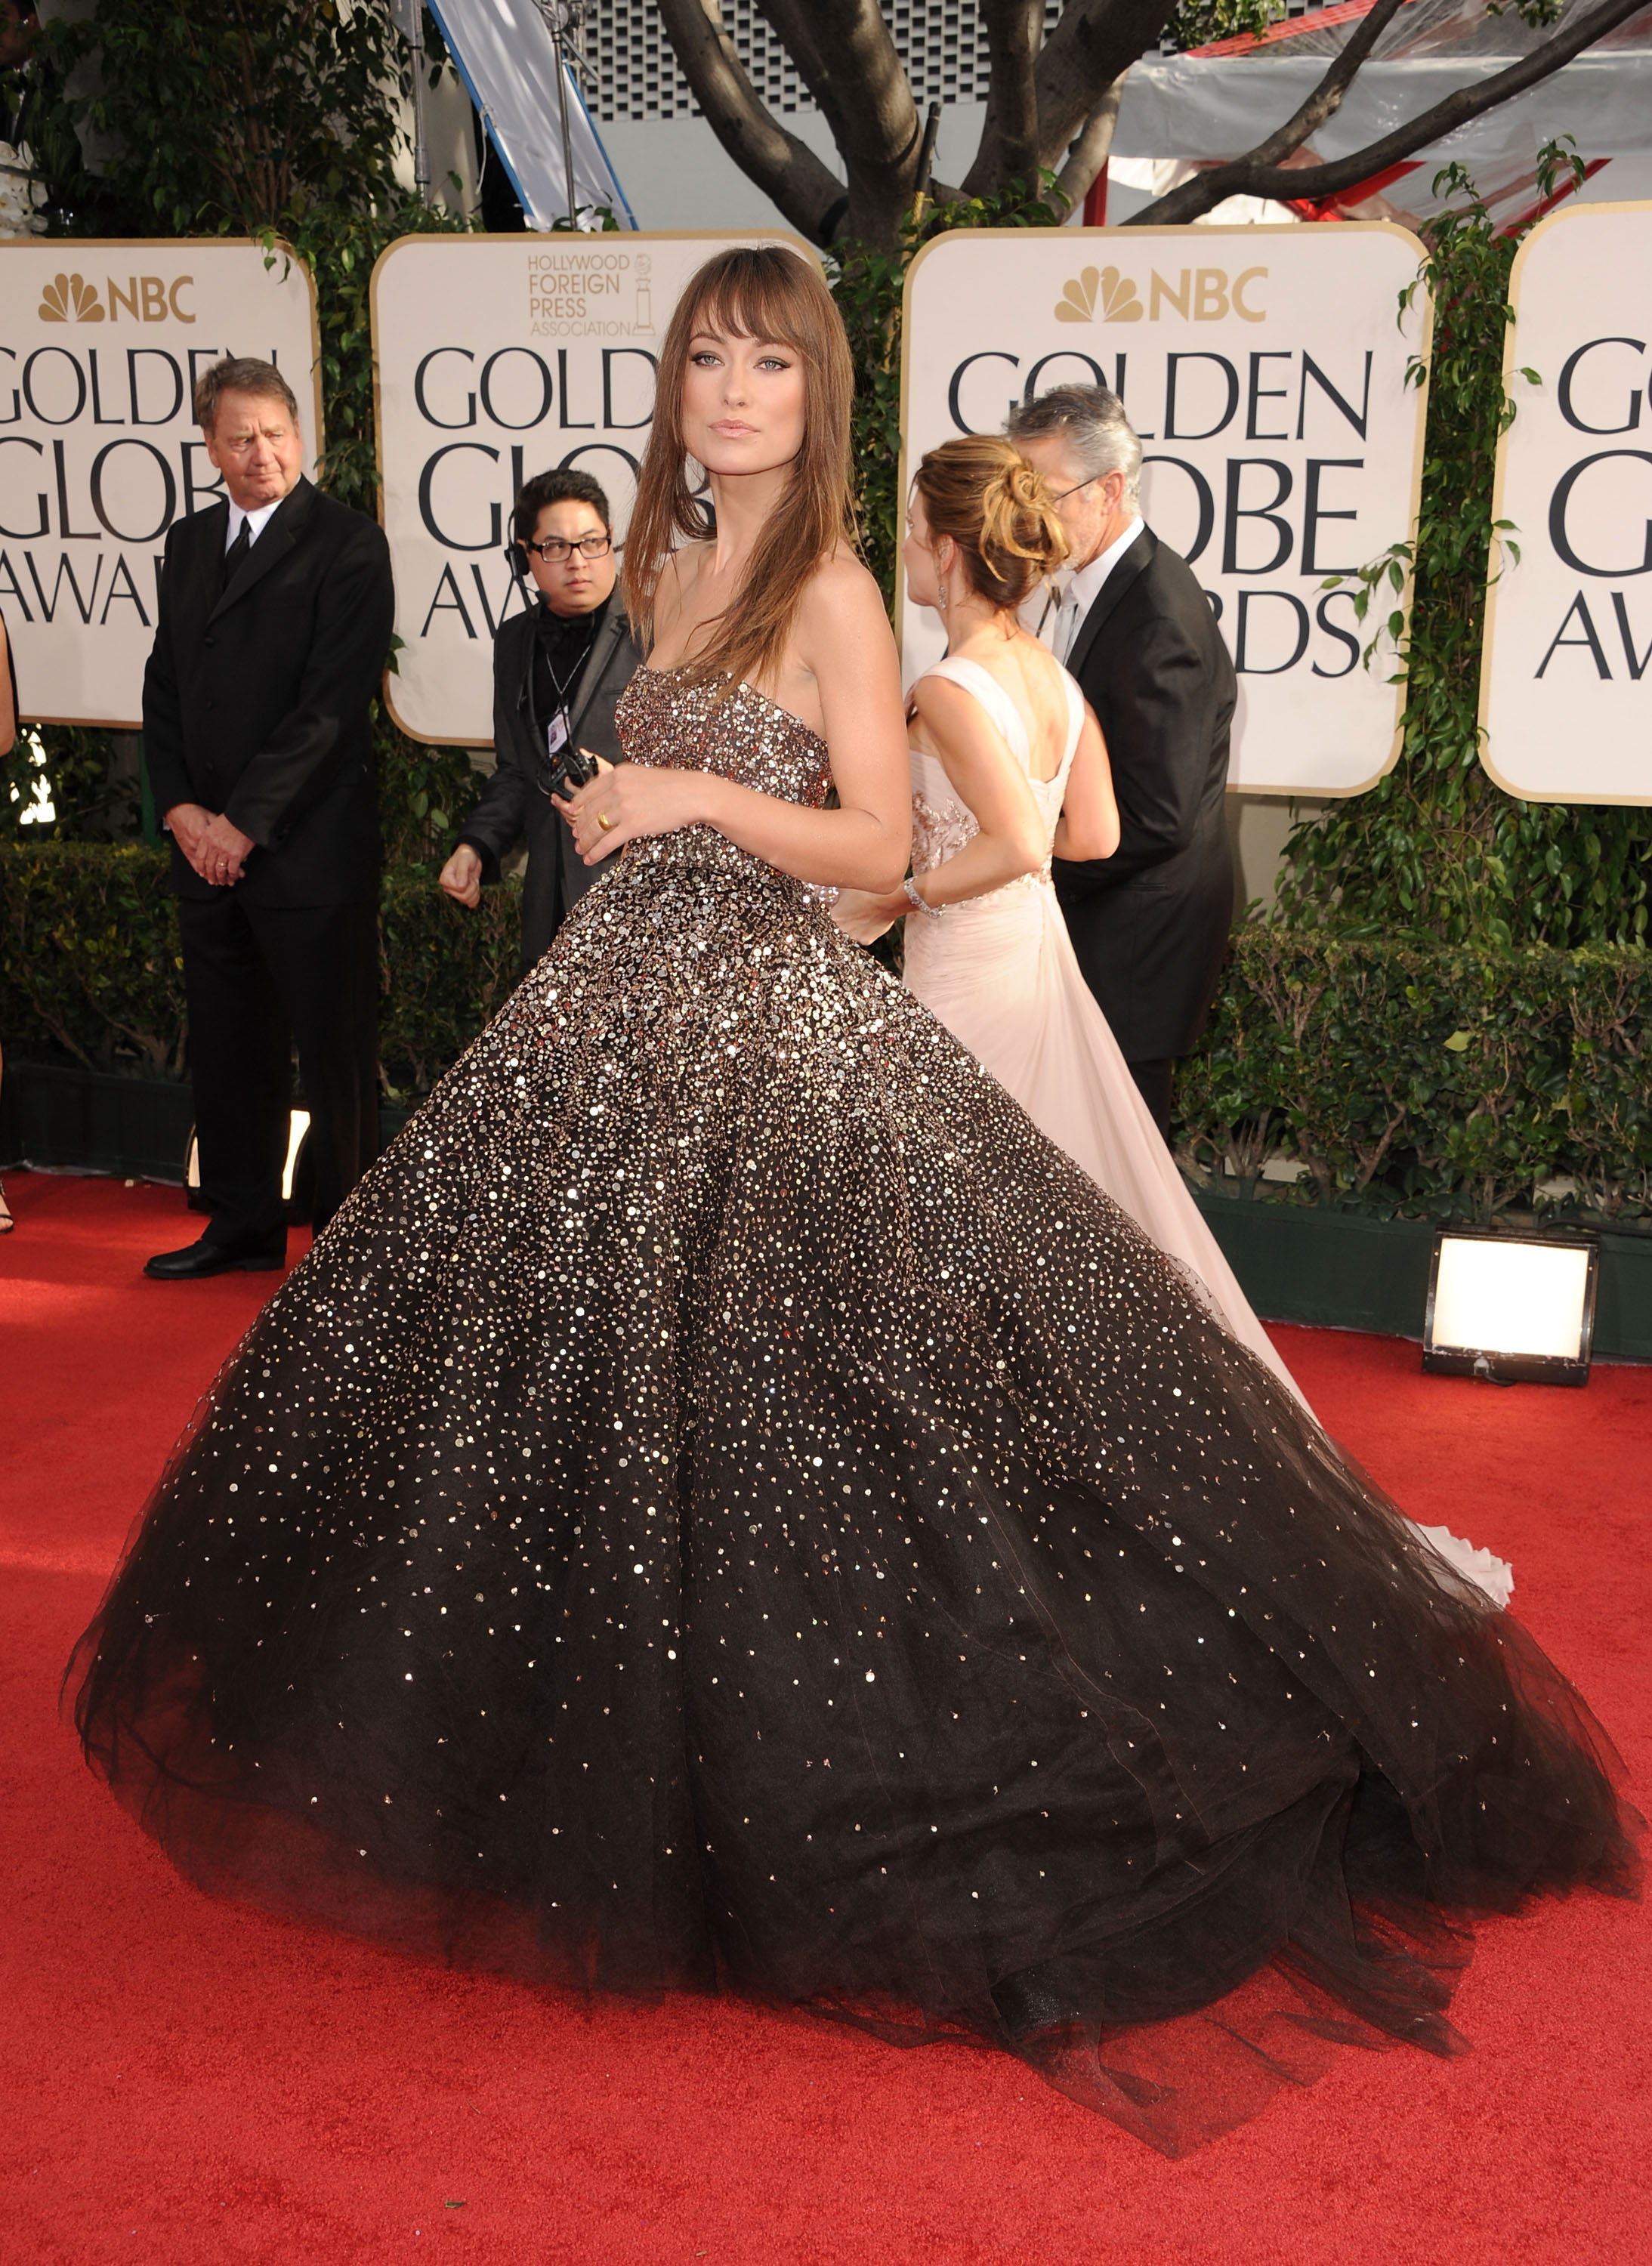 Olivia Wilde Kicks Off the Golden Globes Red Carpet in a Sexy, Sparkly Marchesa!